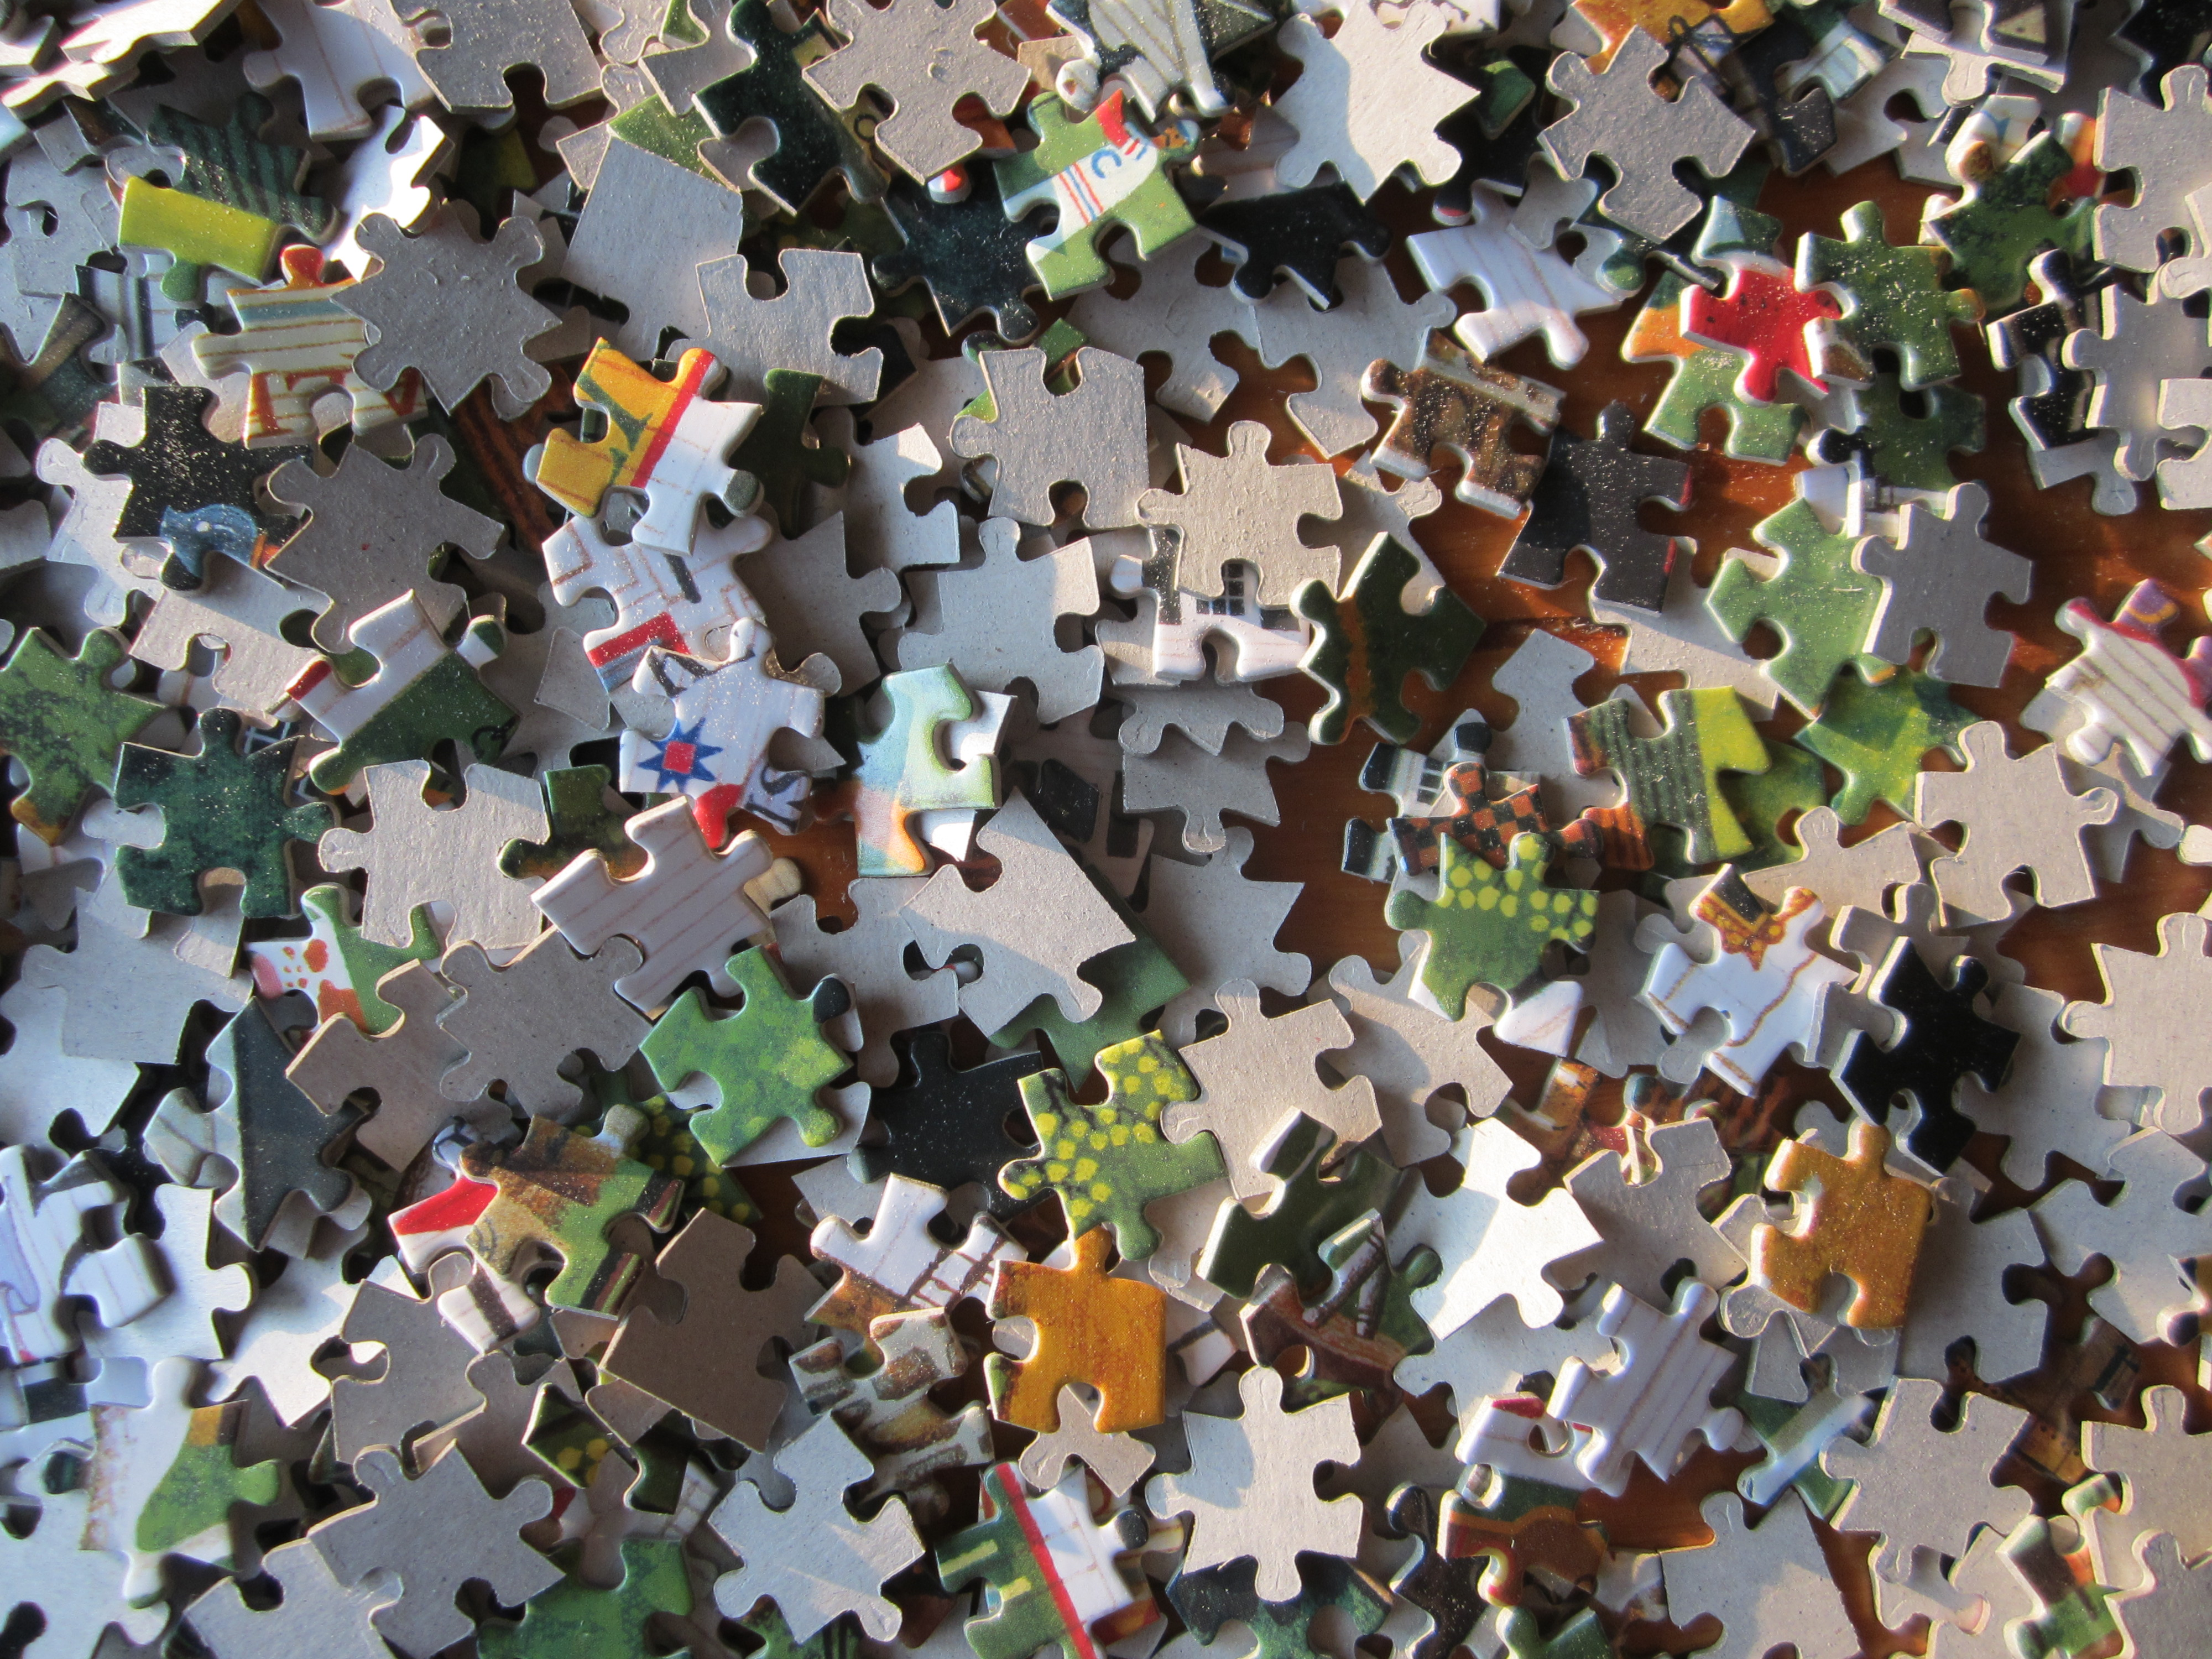 Your dream is like a dumped box of 1,000 puzzle pieces